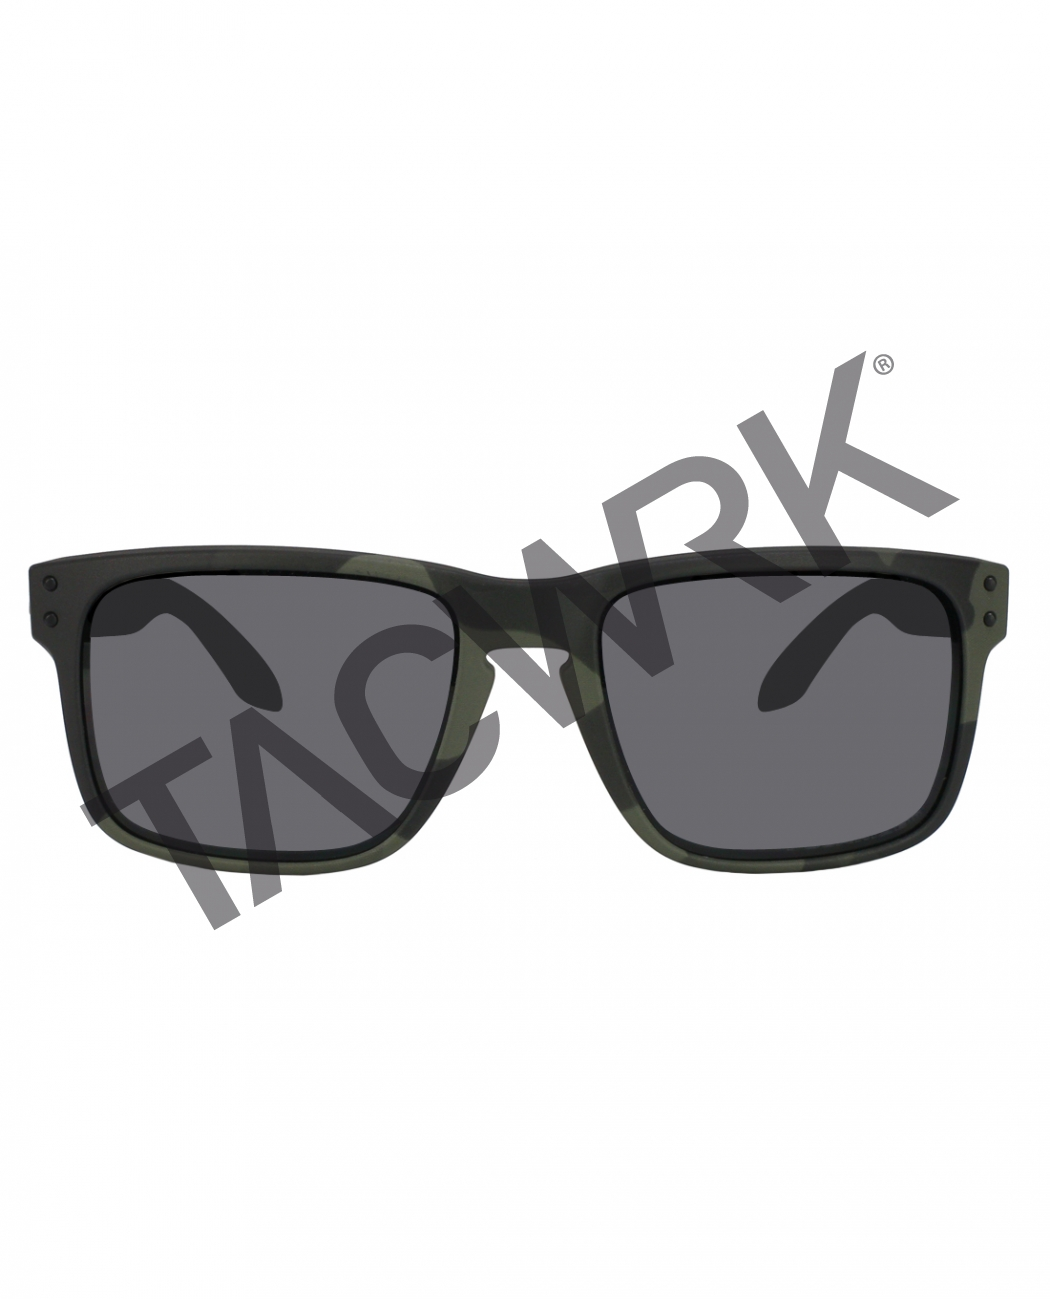 525caaae9a5 Oakley Holbrook Multicam Black Polarized Grey - TACWRK